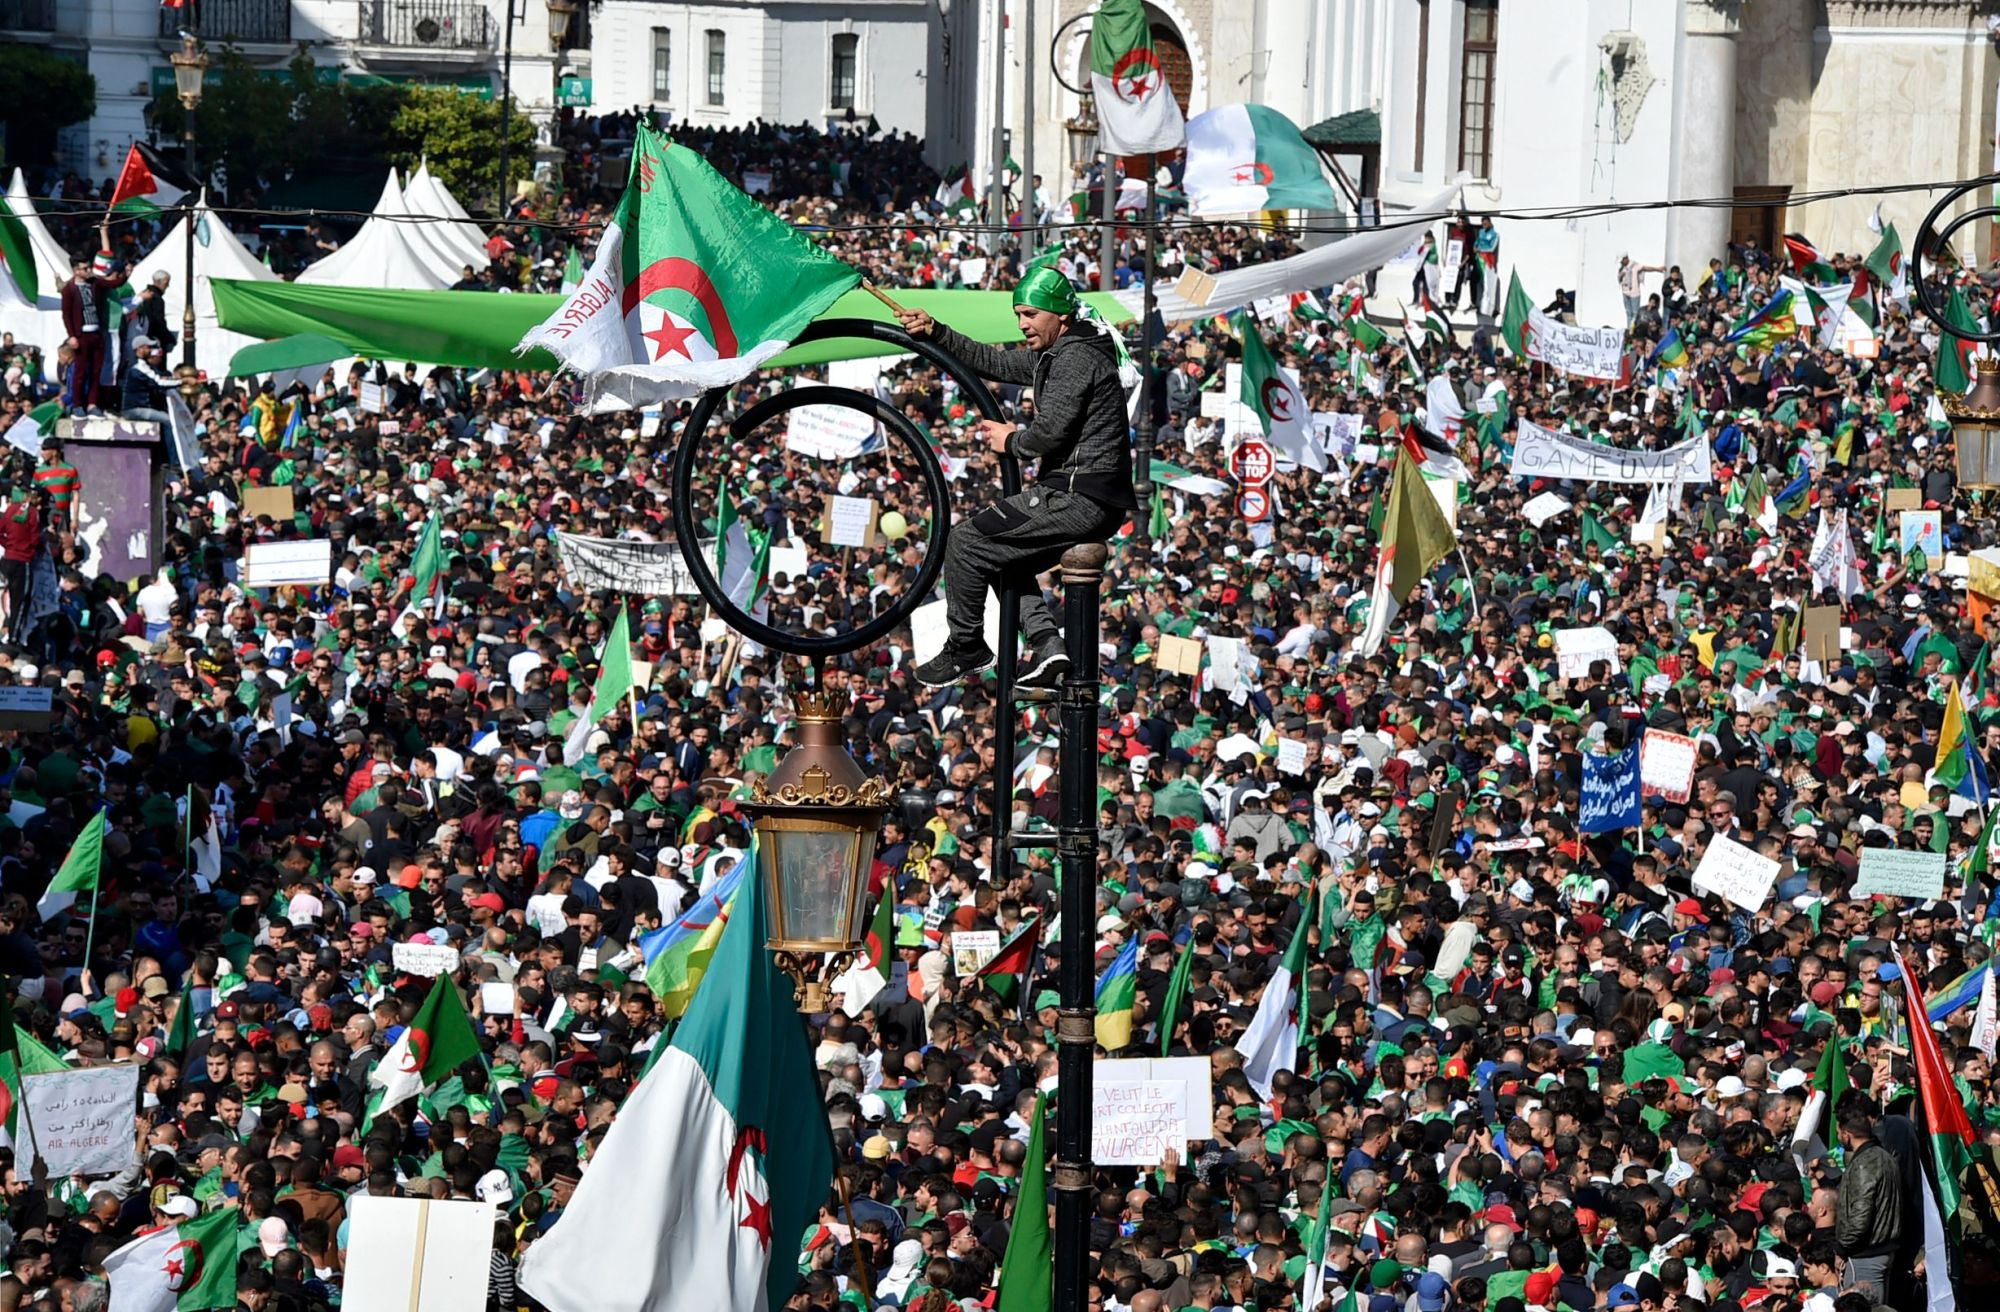 An Algerian protester atop a light pole waves a national flag  during a mass demonstration against ailing President Abdelaziz Bouteflika in Algiers on Friday. | AFP-JIJI